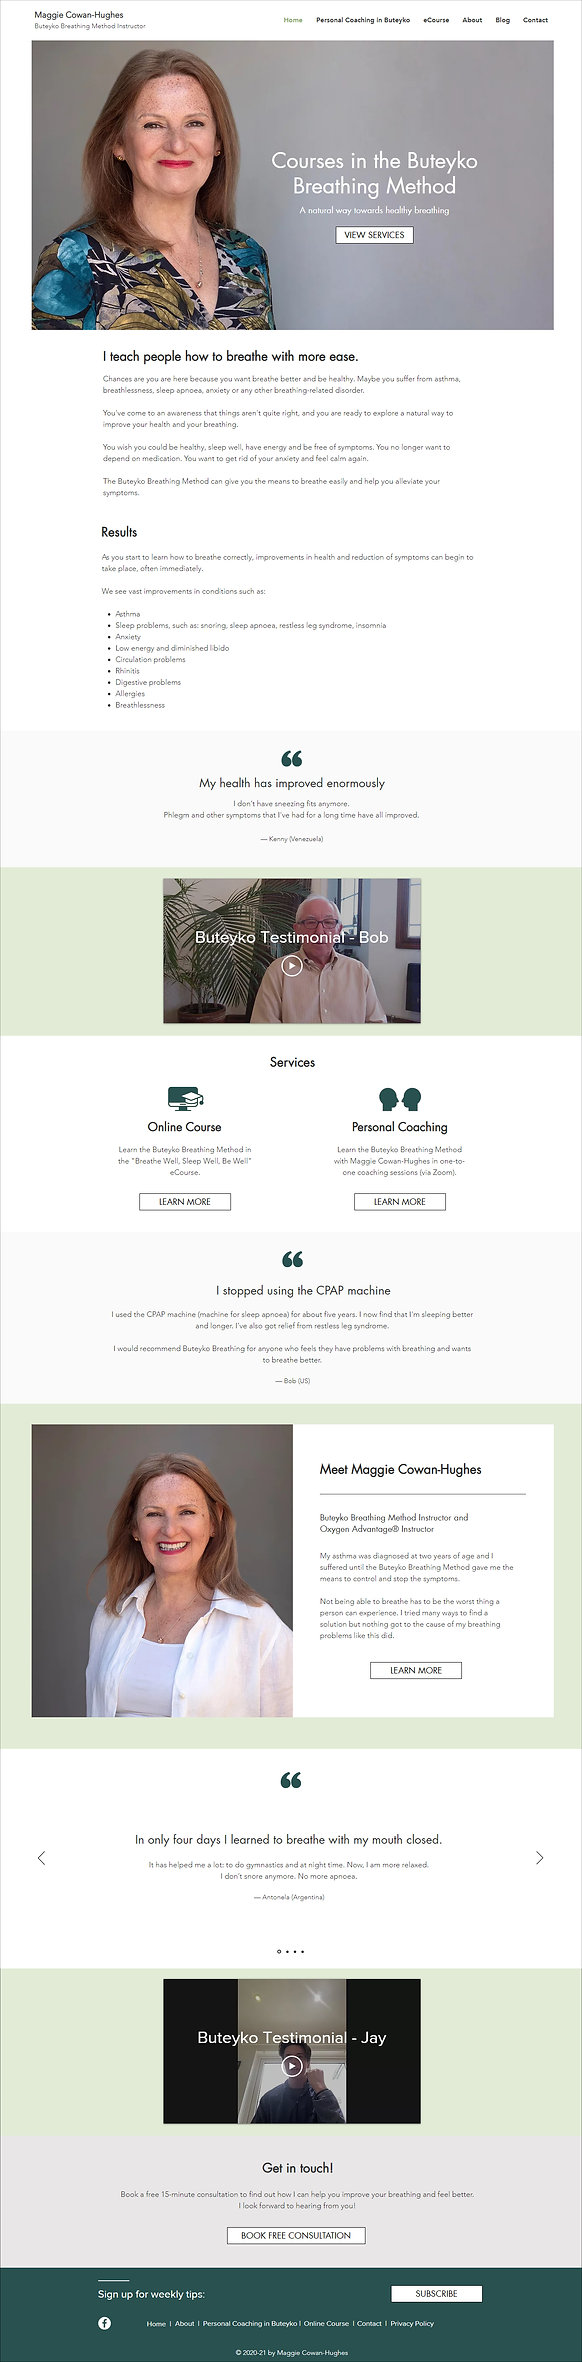 Maggie - Home page.jpg